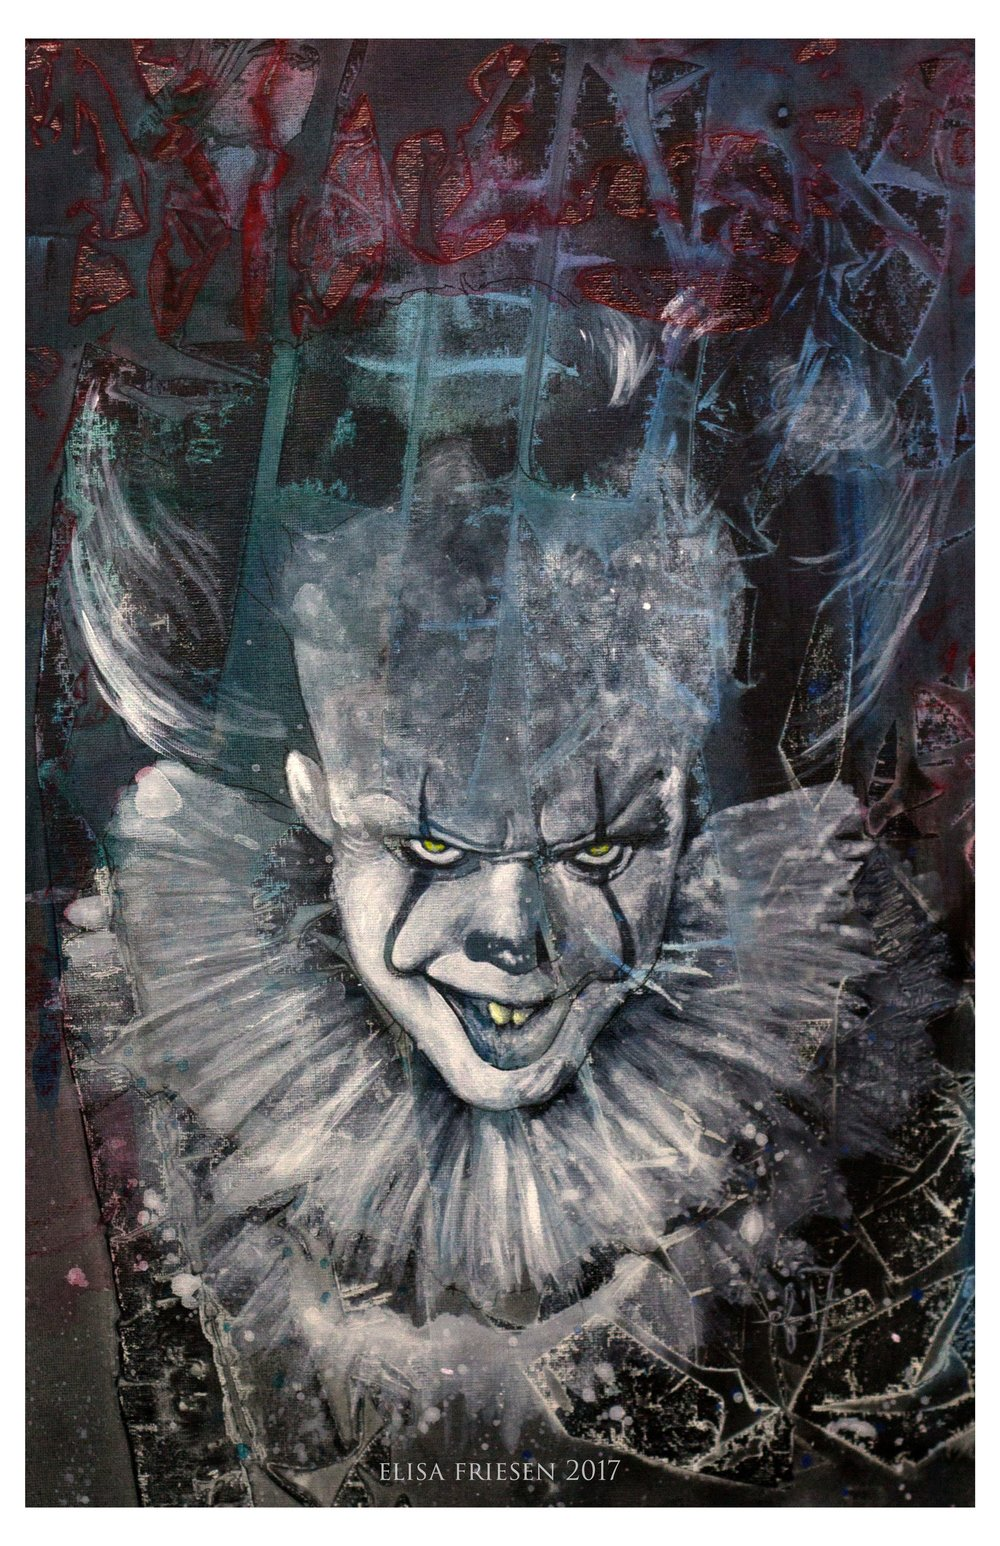 Pennywise, $500.00. Contact hello@elisafriesen.com to purchase.